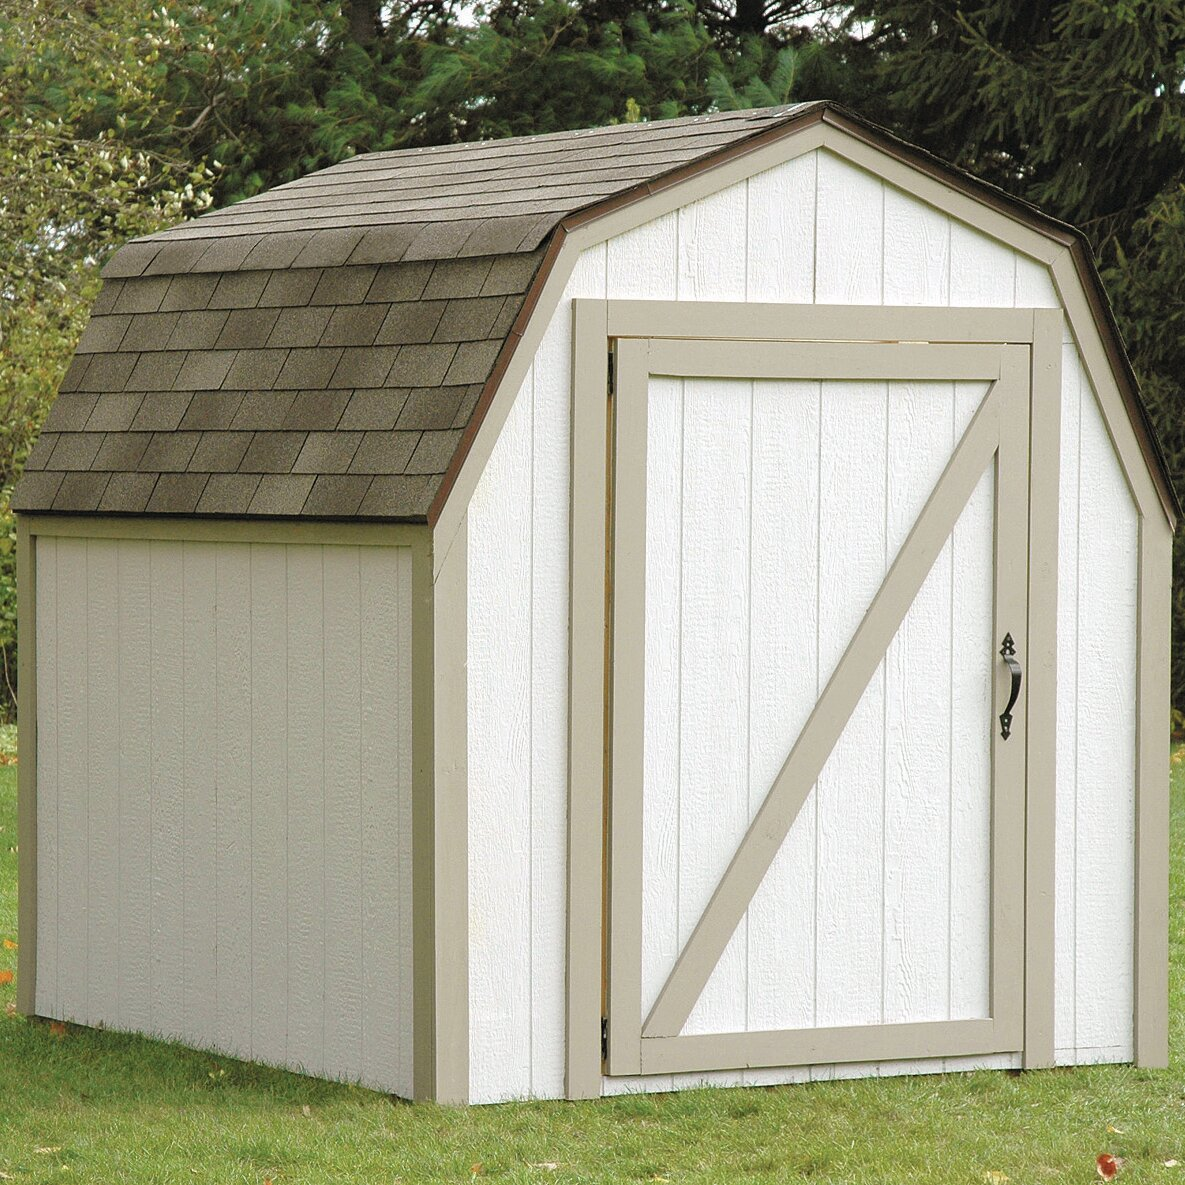 2x4 Basics Barn Roof 7 Ft W X 8 Ft D Storage Shed Kit